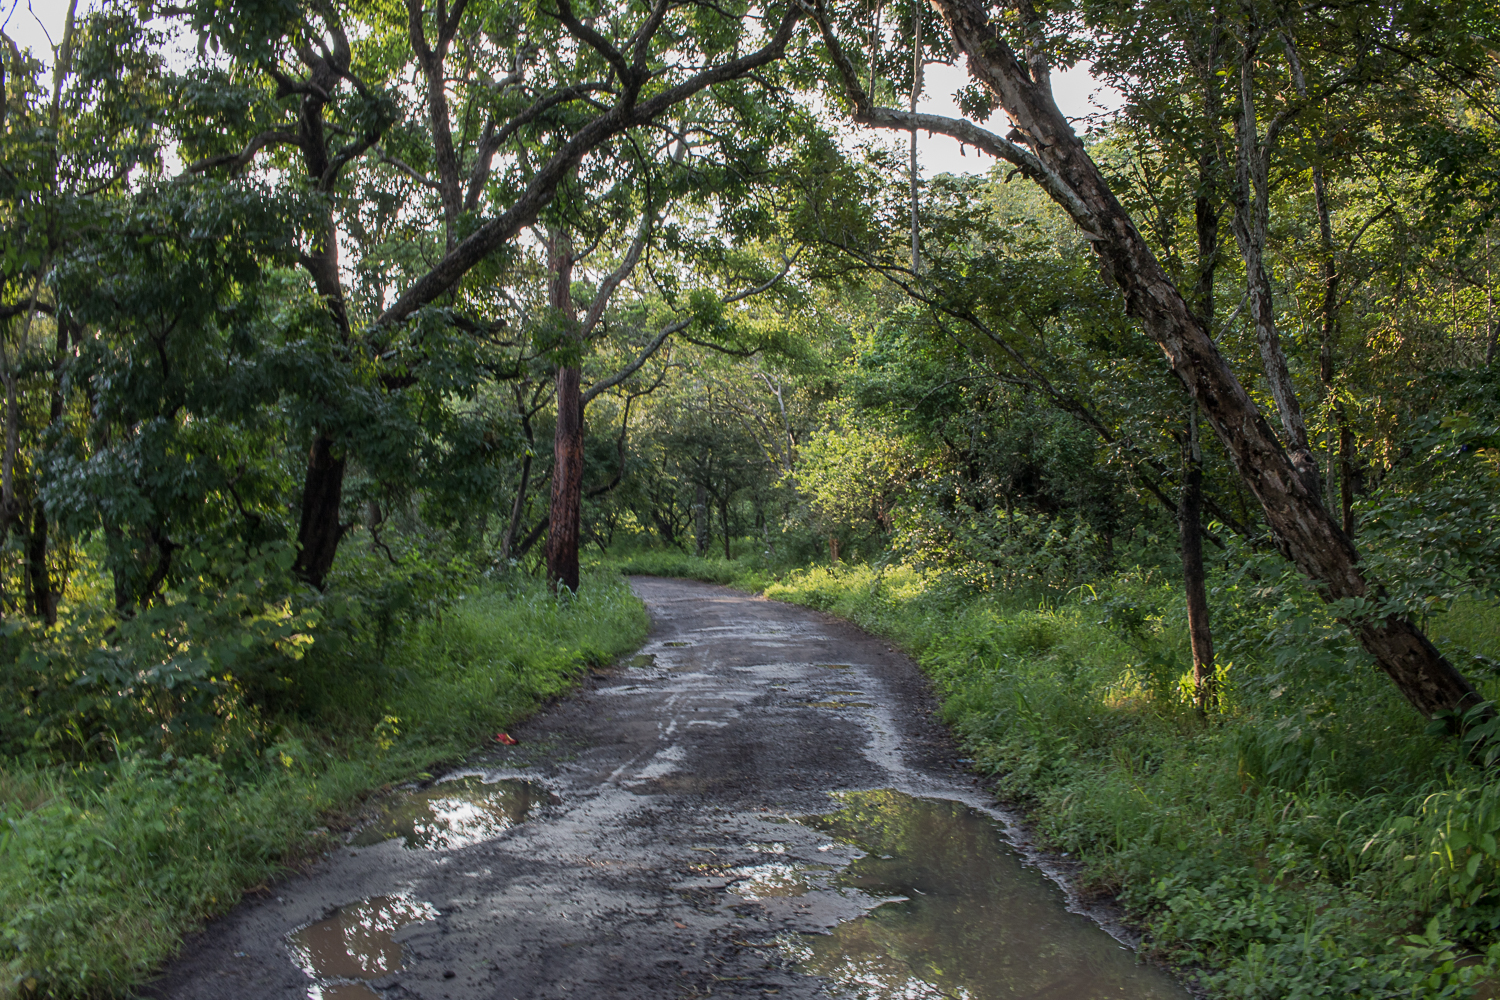 Wet roads after a heavy rain in Baluran National Park.